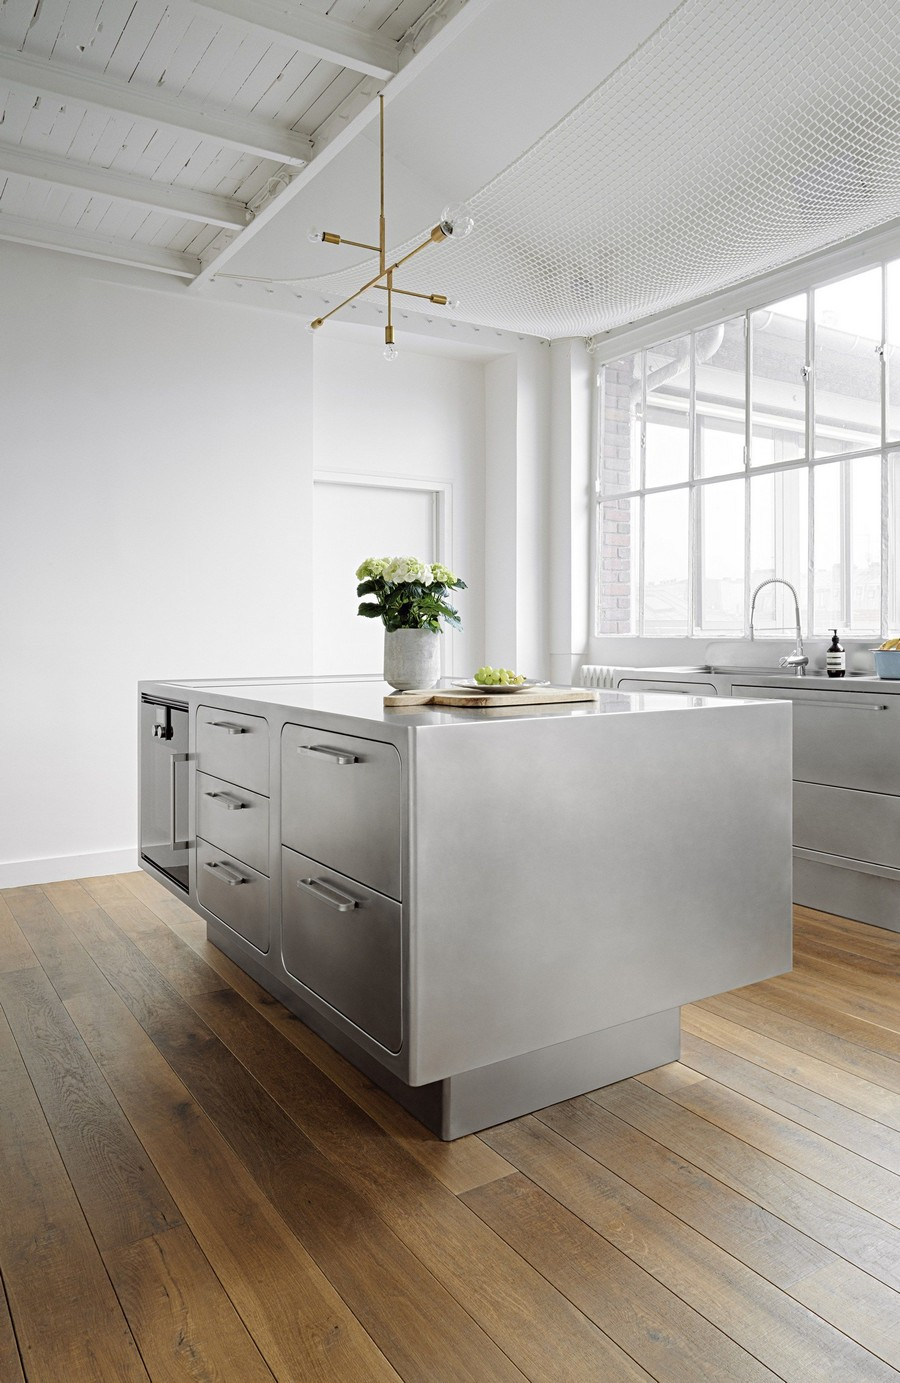 You'll Truly Love the Industrial Style Kitchen of this Parisian Loft 5 industrial style kitchen You'll Truly Love the Industrial Style Kitchen of this Parisian Loft Youll Truly Love the Industrial Style Kitchen of this Parisian Loft 5